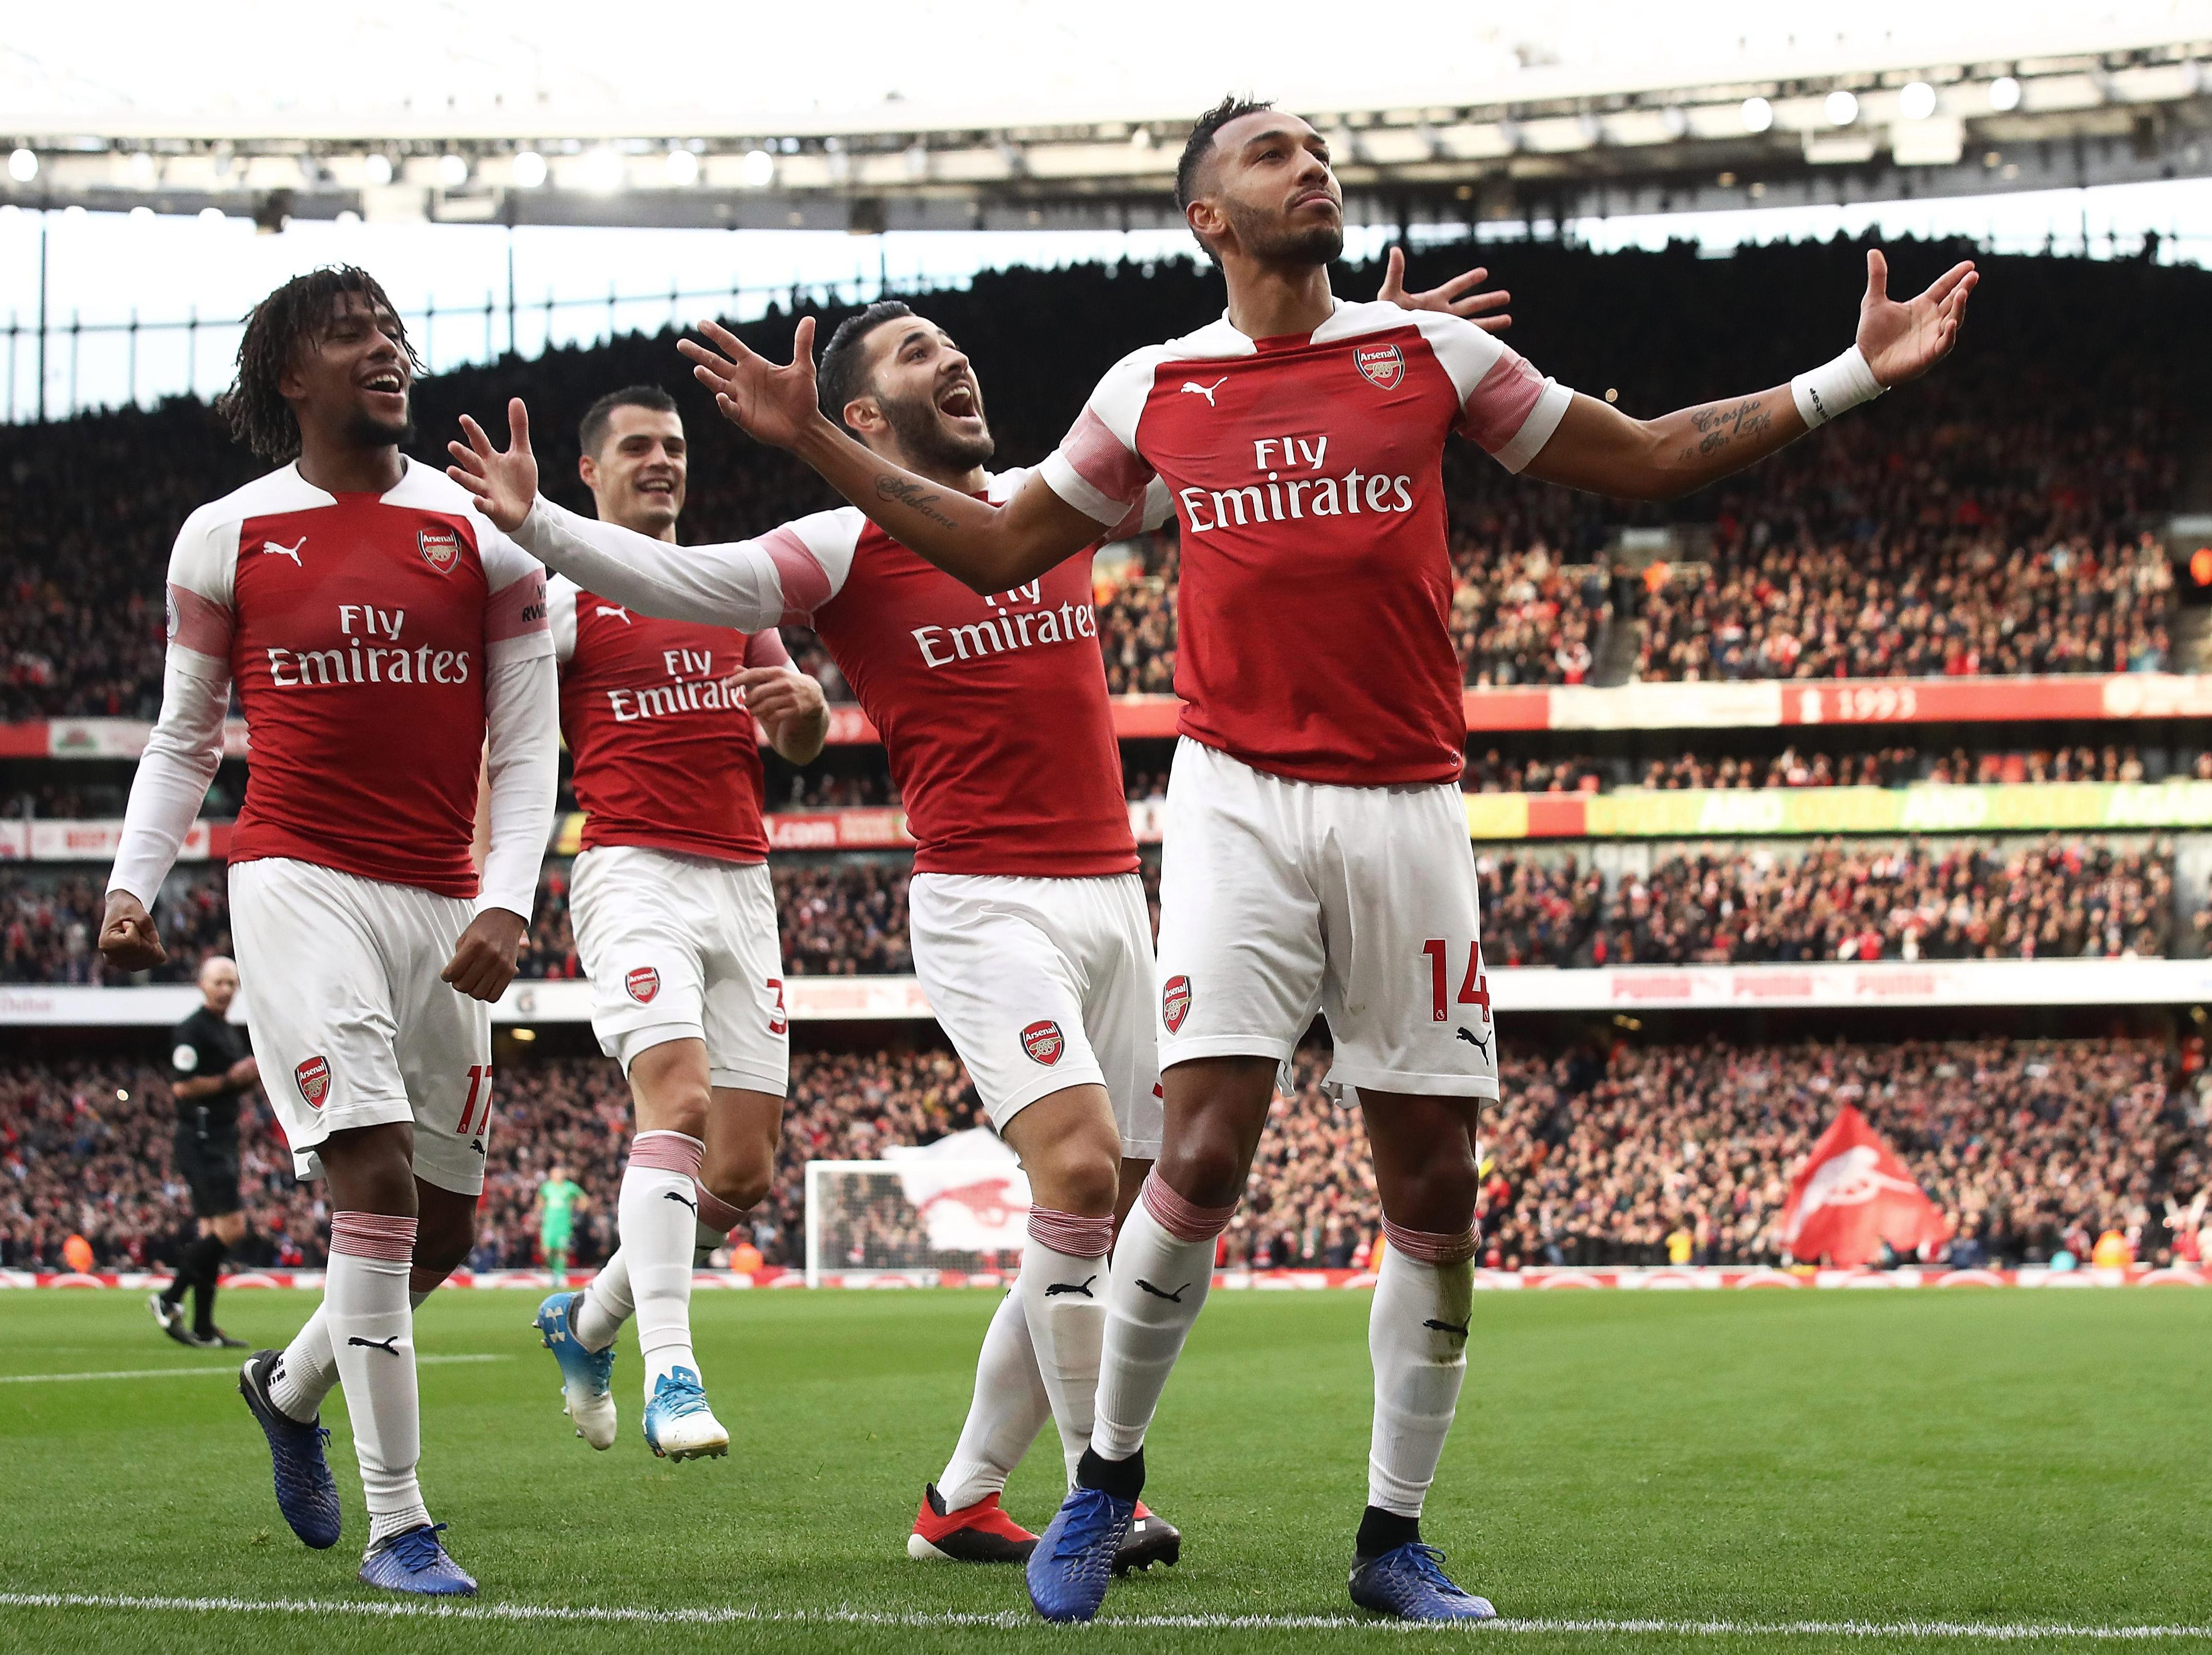 Pierre-Emerick Aubameyang notched two of the goals against Spurs